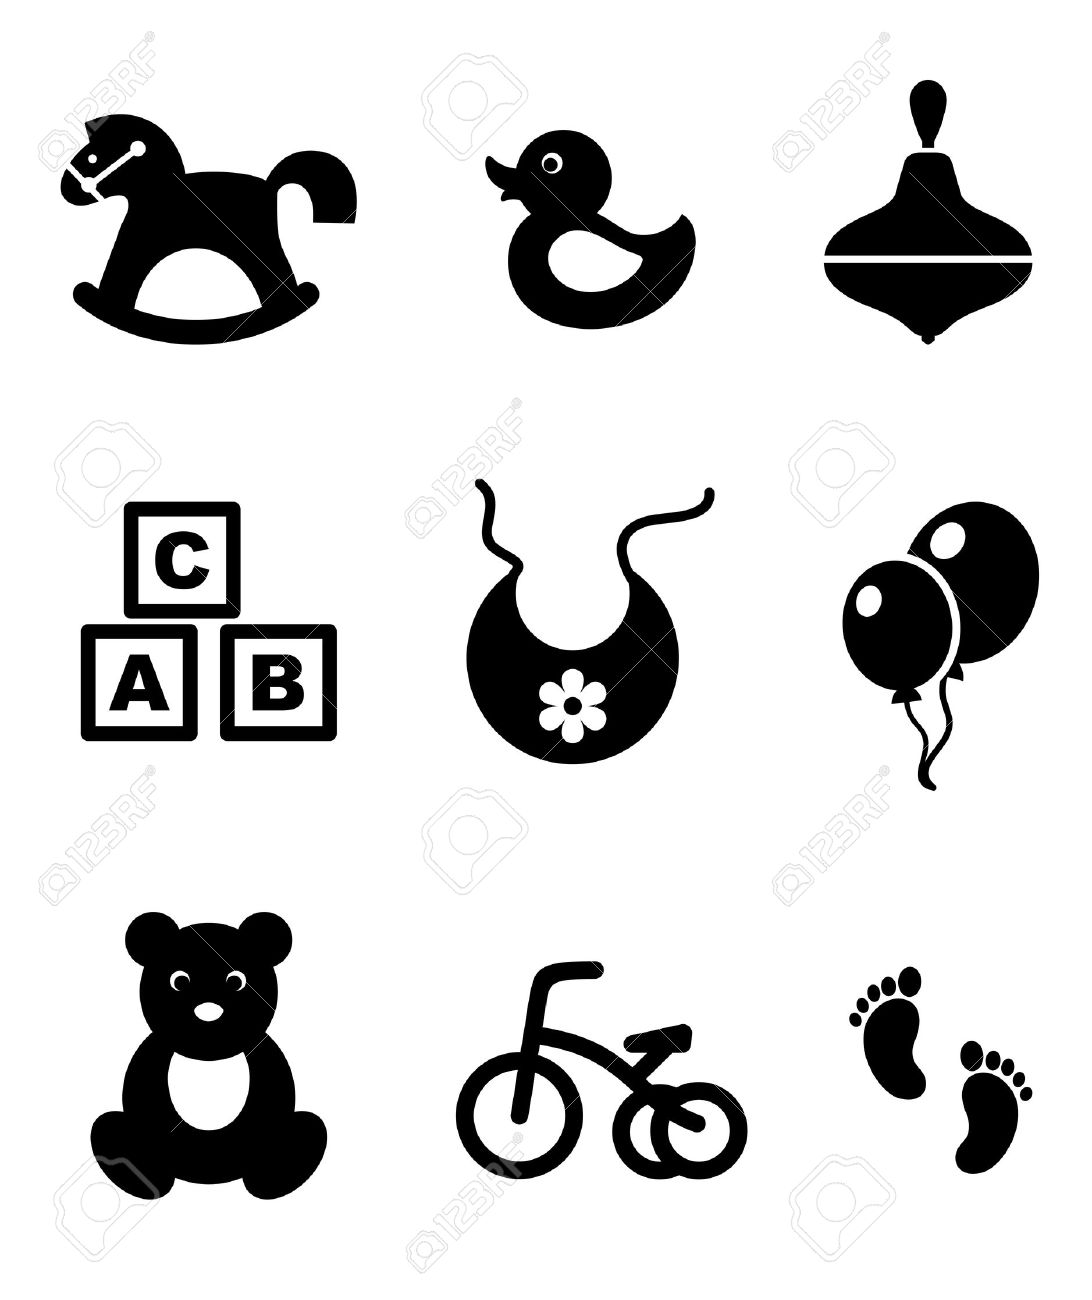 Set Of Nine Different Black And White Baby Icons Depicting A